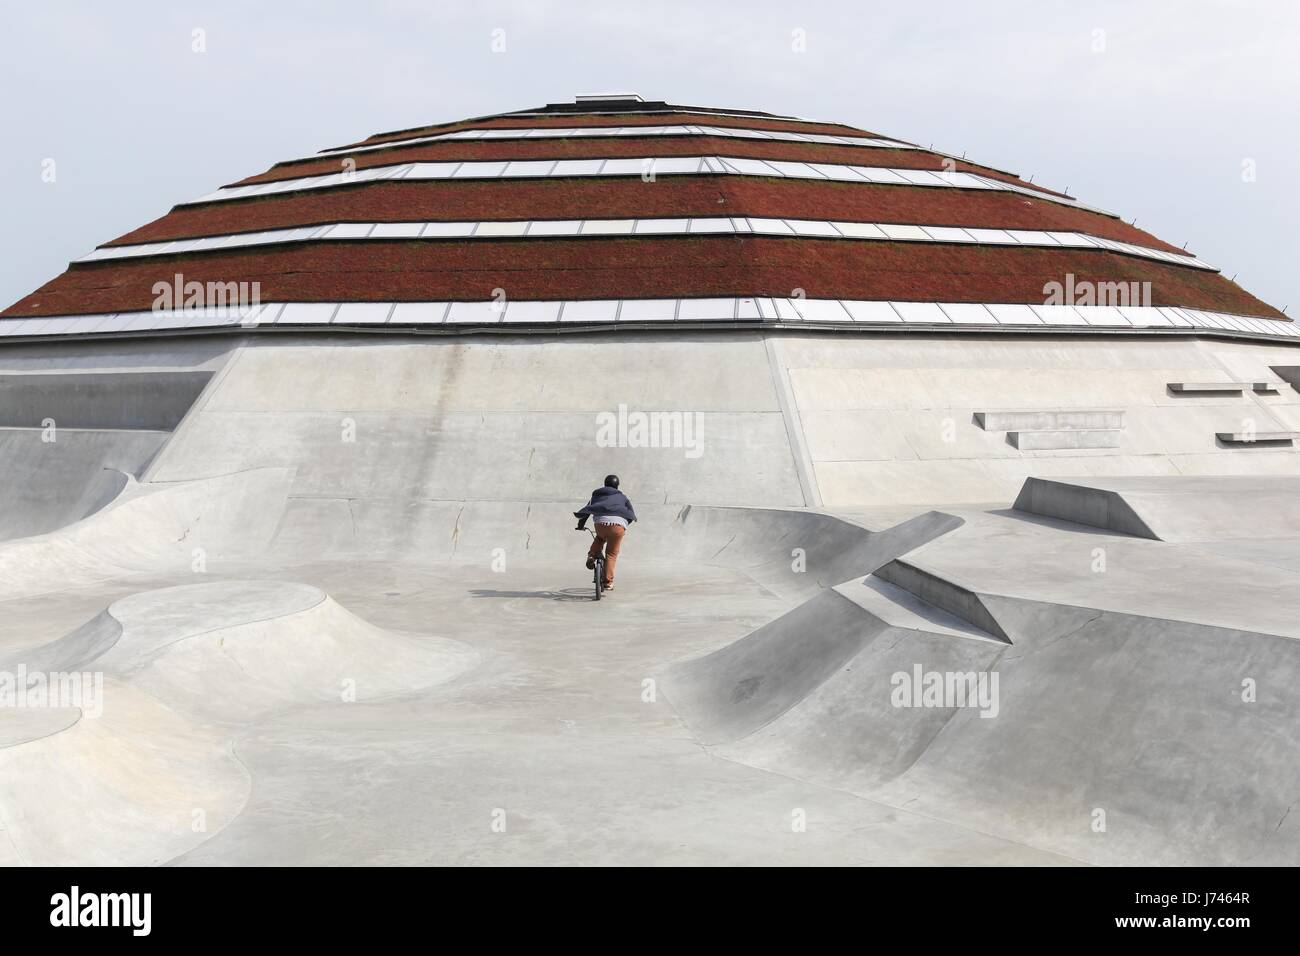 Haderslev, Denmark - May 29, 2016: StreetDome building is a unique world class skatepark and street sport facility - Stock Image